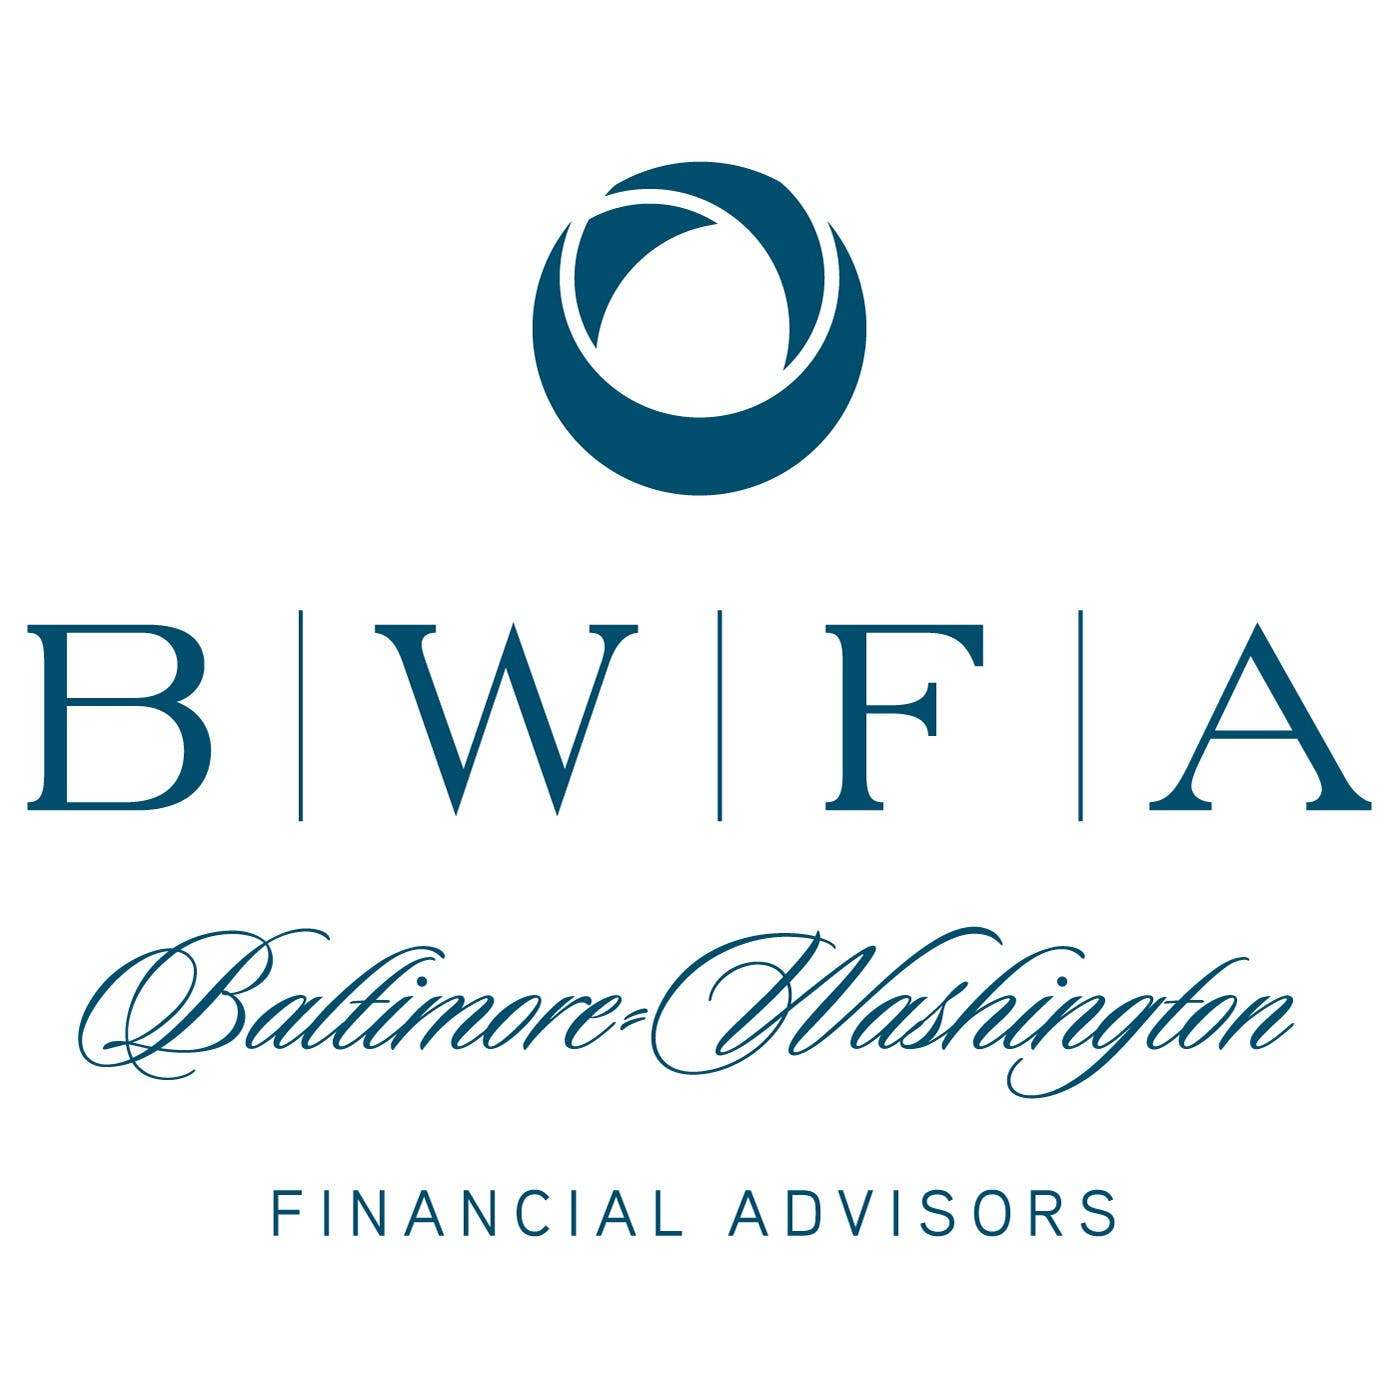 Baltimore Washington Financial Advisors Podcasts